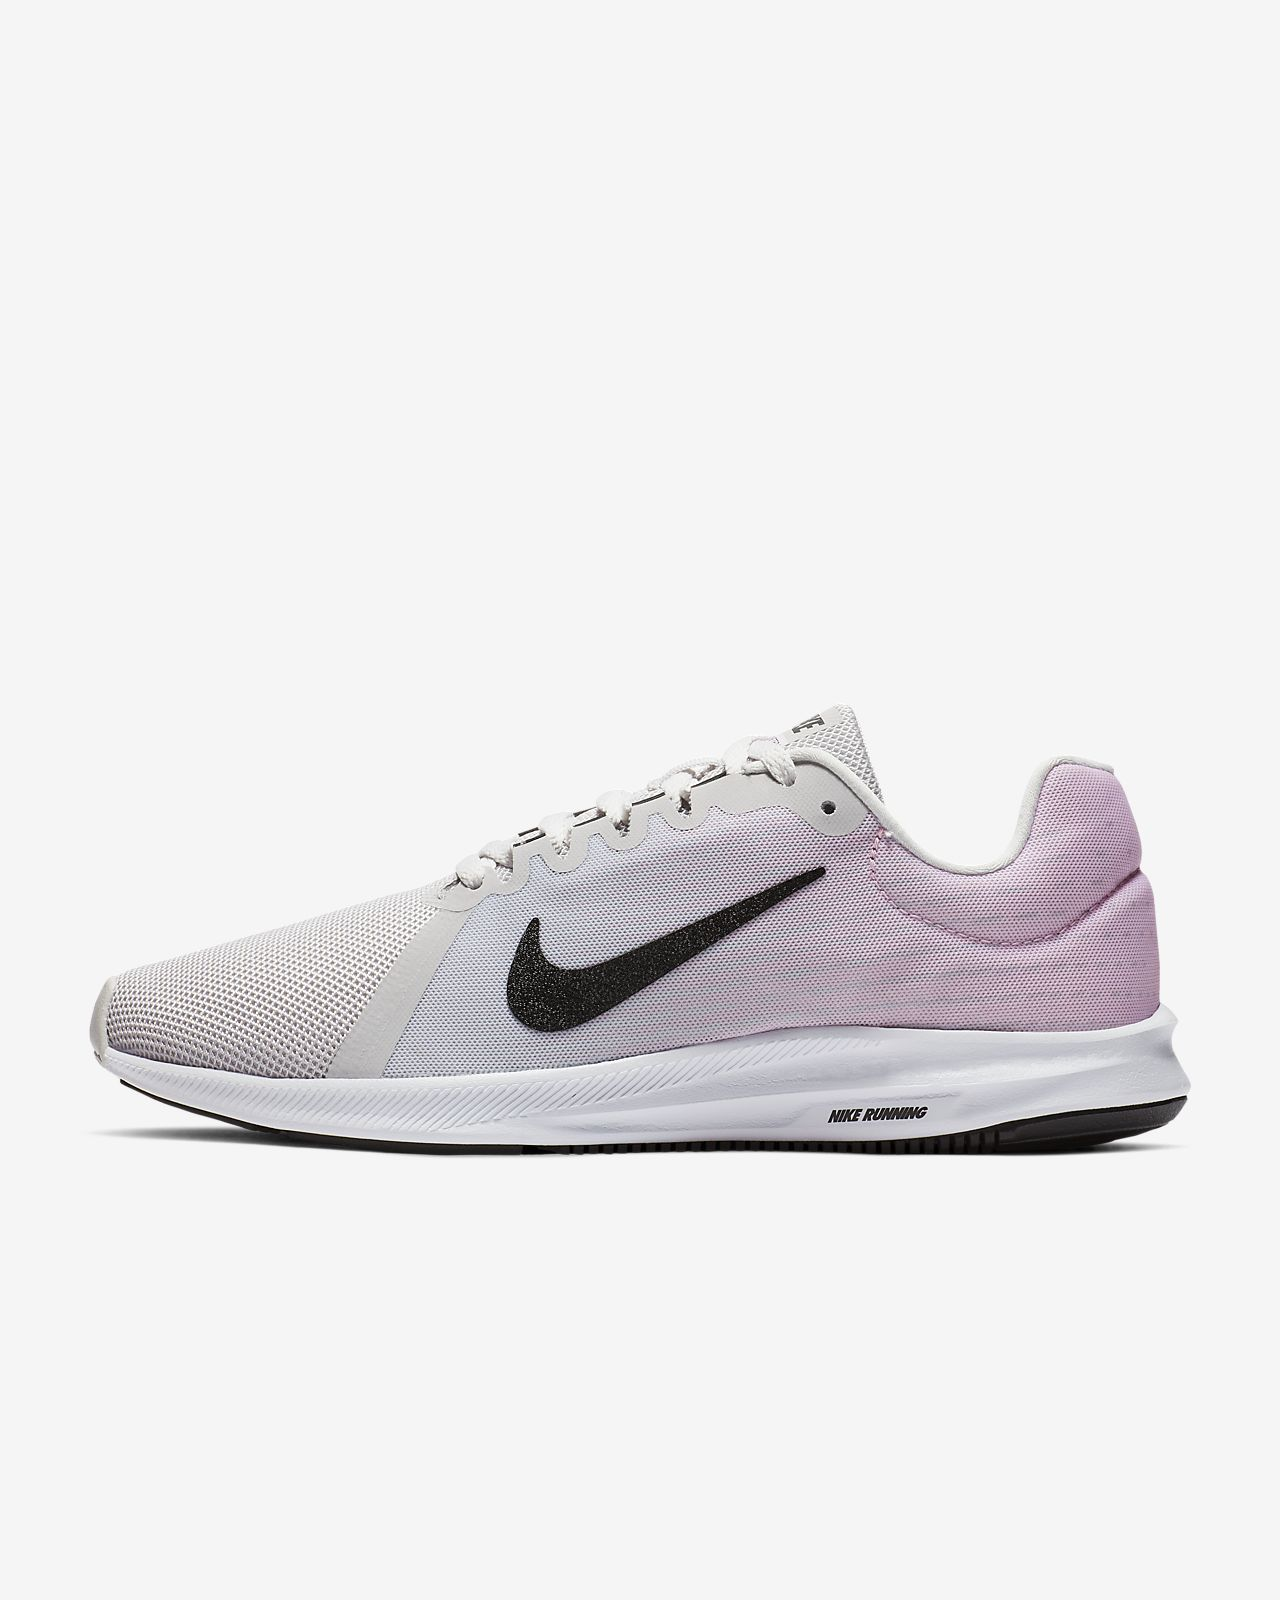 nike running downshifter 8 Remise